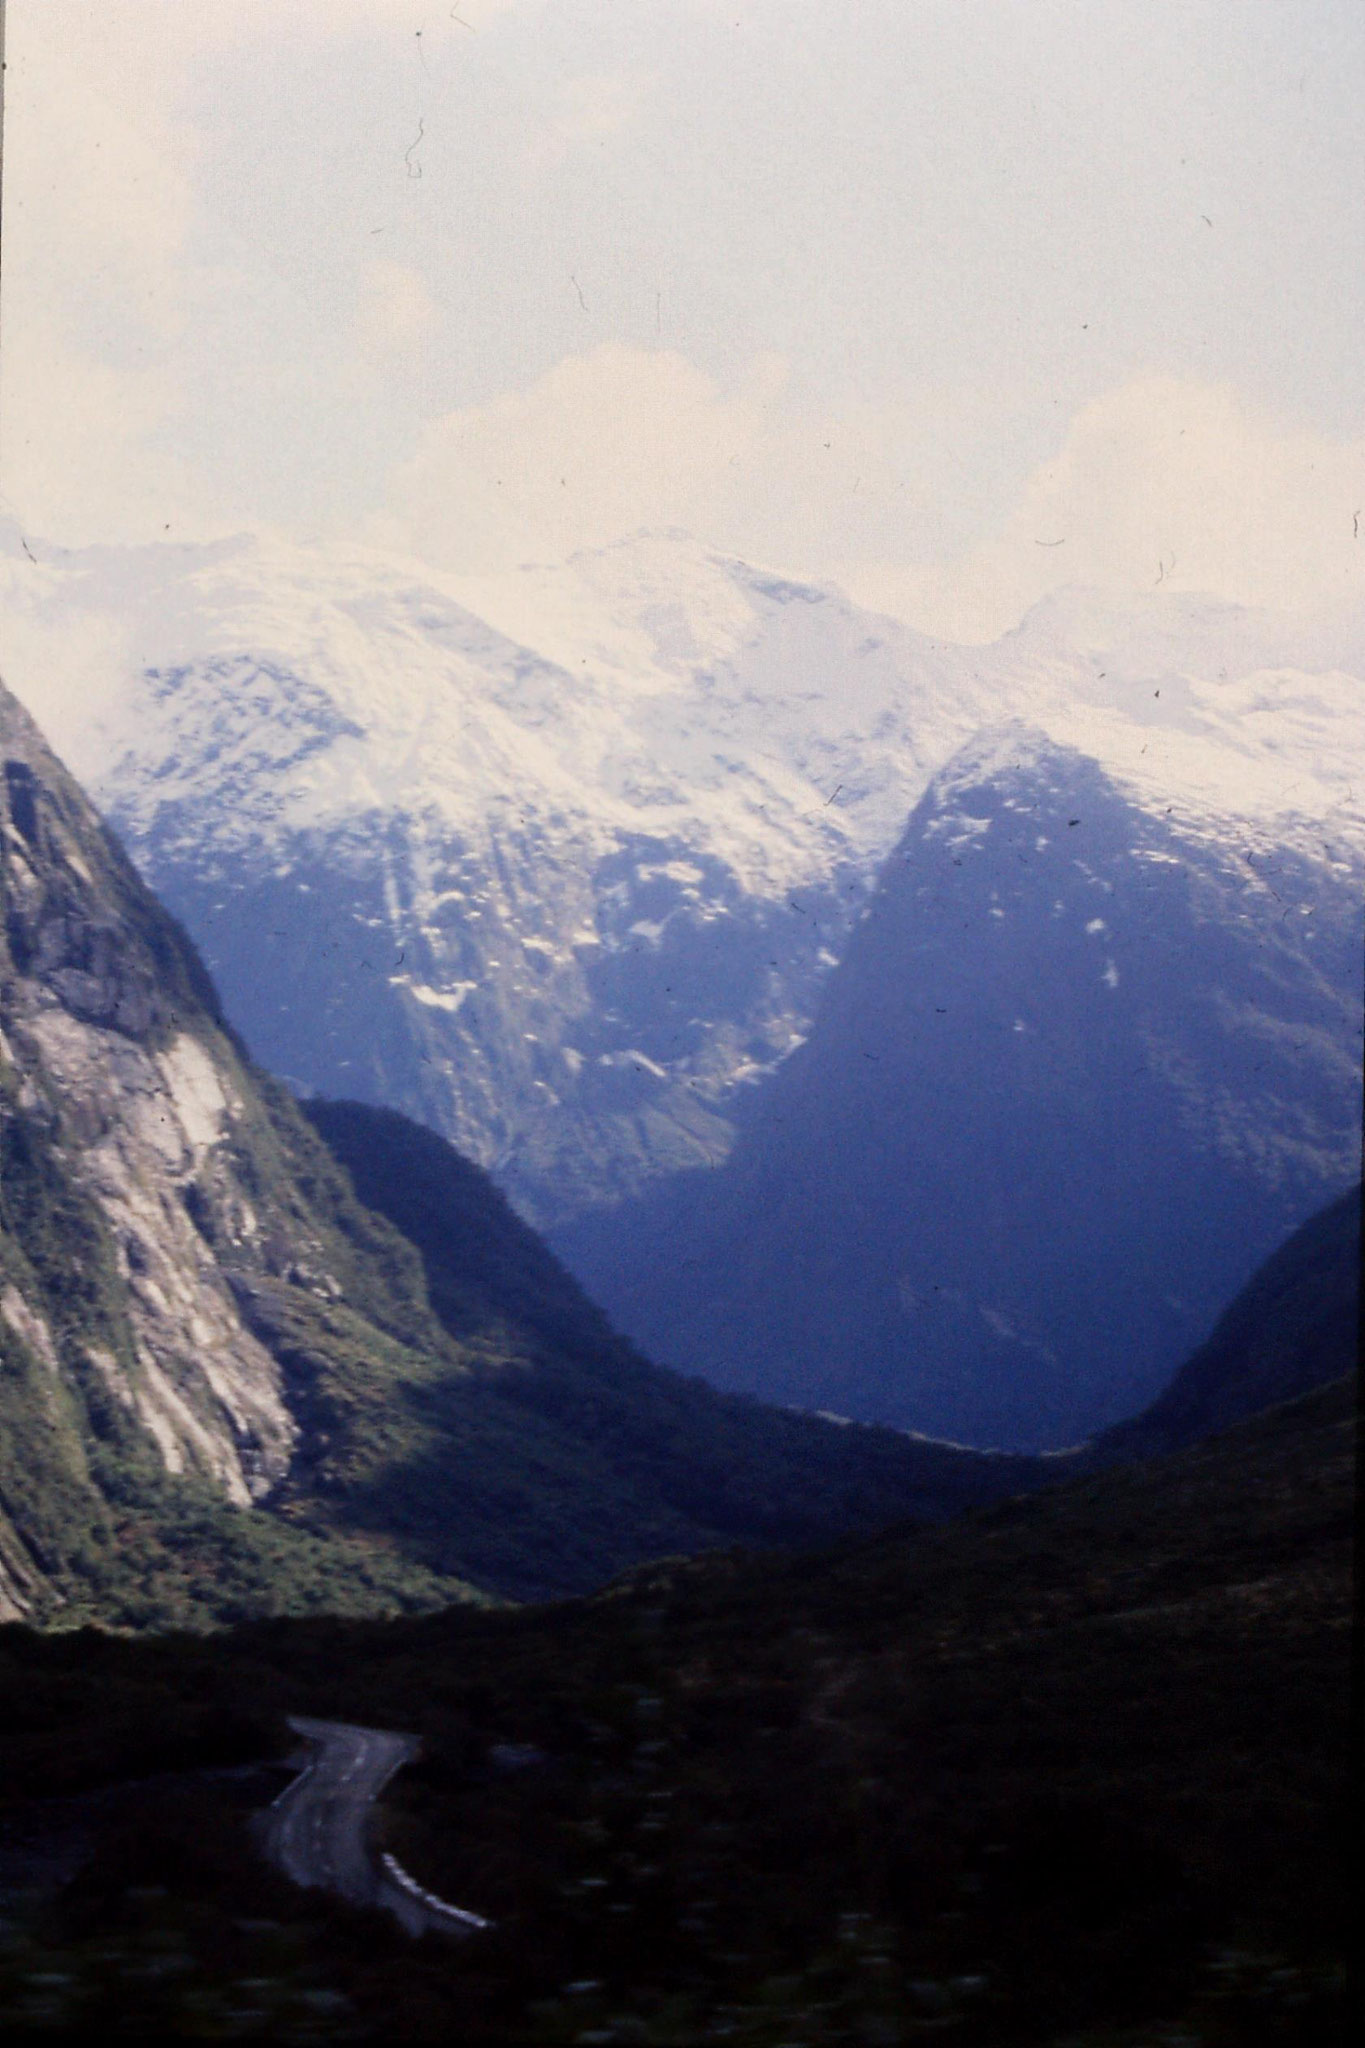 15/8/1990: 4: down valley west side of Homer tunnel